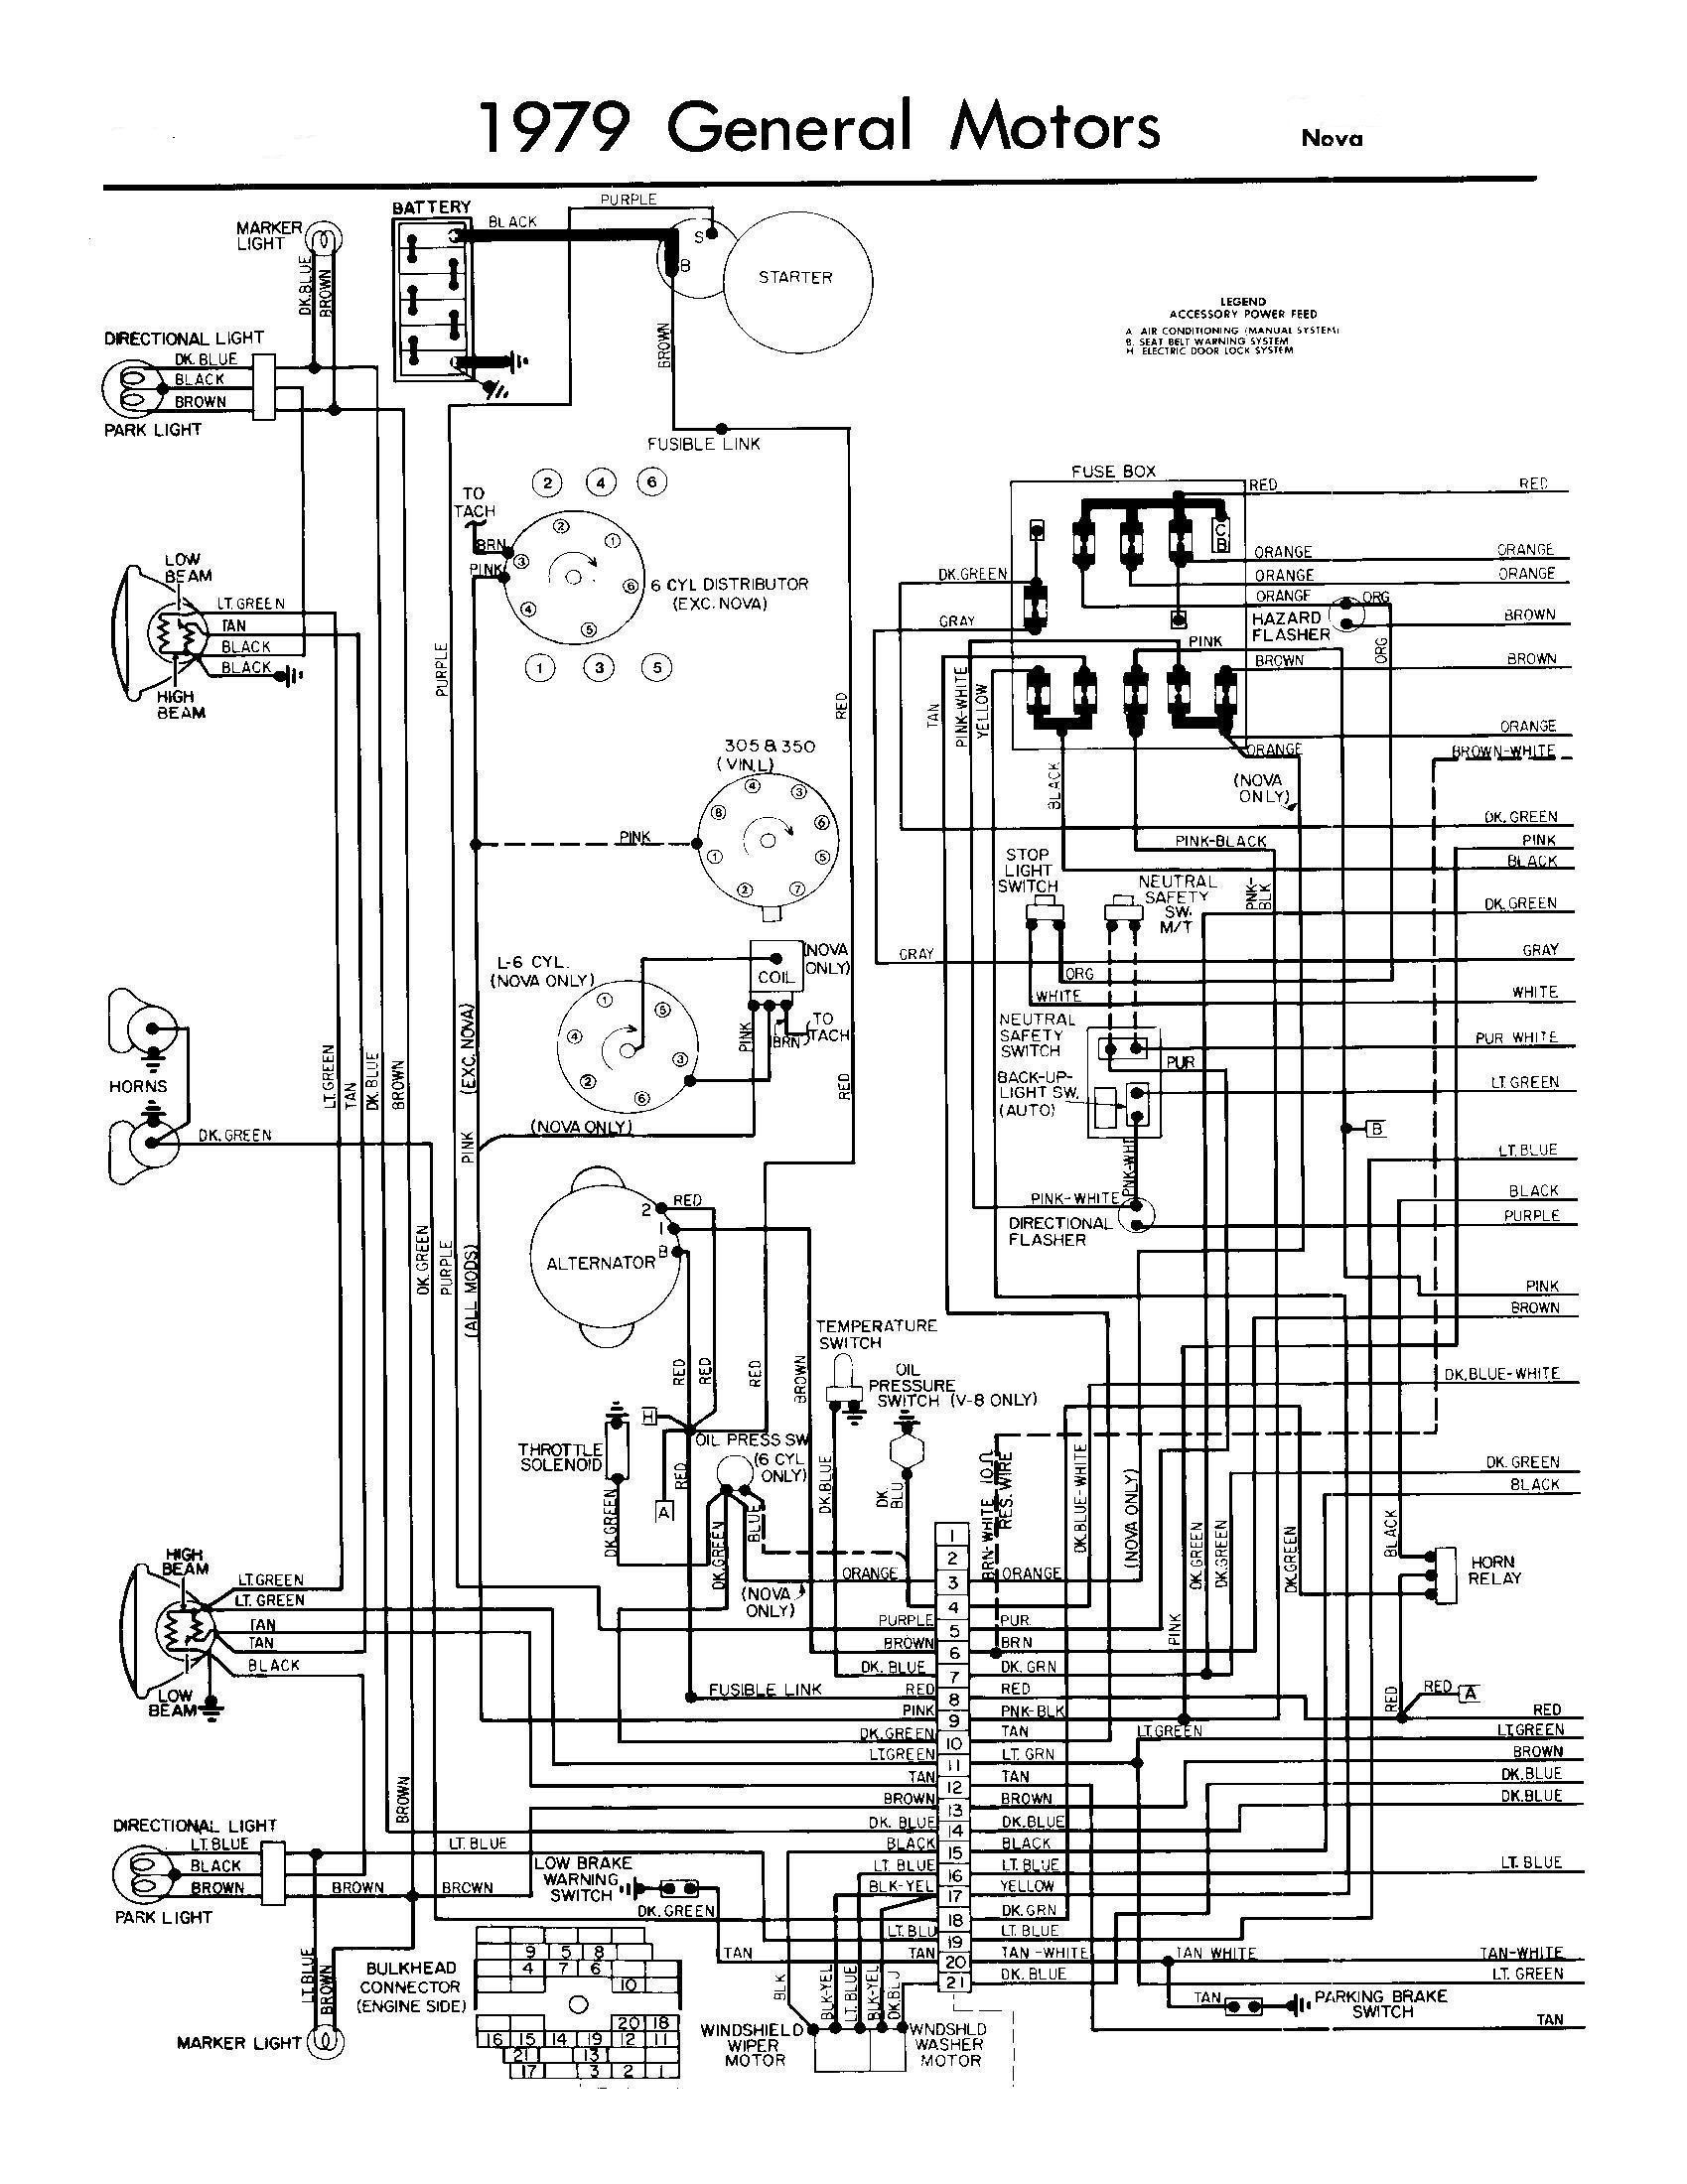 78 Gmc Wiring Diagram - All Wiring Diagram  Jeep Wiring Diagram on 1981 ford bronco wiring diagram, 1981 camaro wiring diagram, 1981 trans am wiring diagram, 1981 dodge wiring diagram, 1981 toyota wiring diagram, 1981 corvette wiring diagram, 1981 mustang wiring diagram, 1981 gmc truck wiring diagram, 1981 chevy truck wiring diagram,